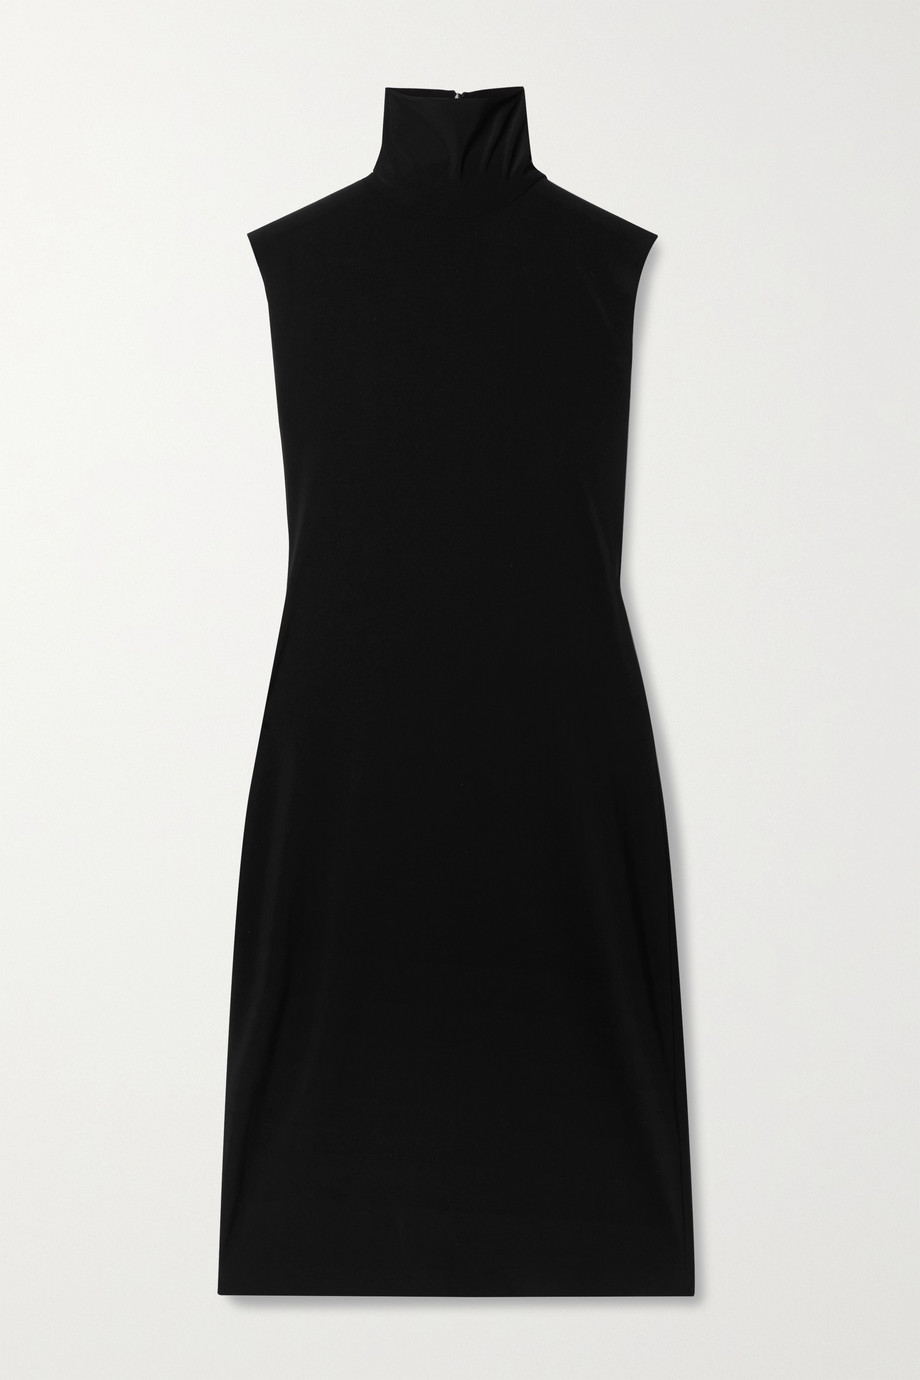 Norma Kamali Stretch-jersey turtleneck dress